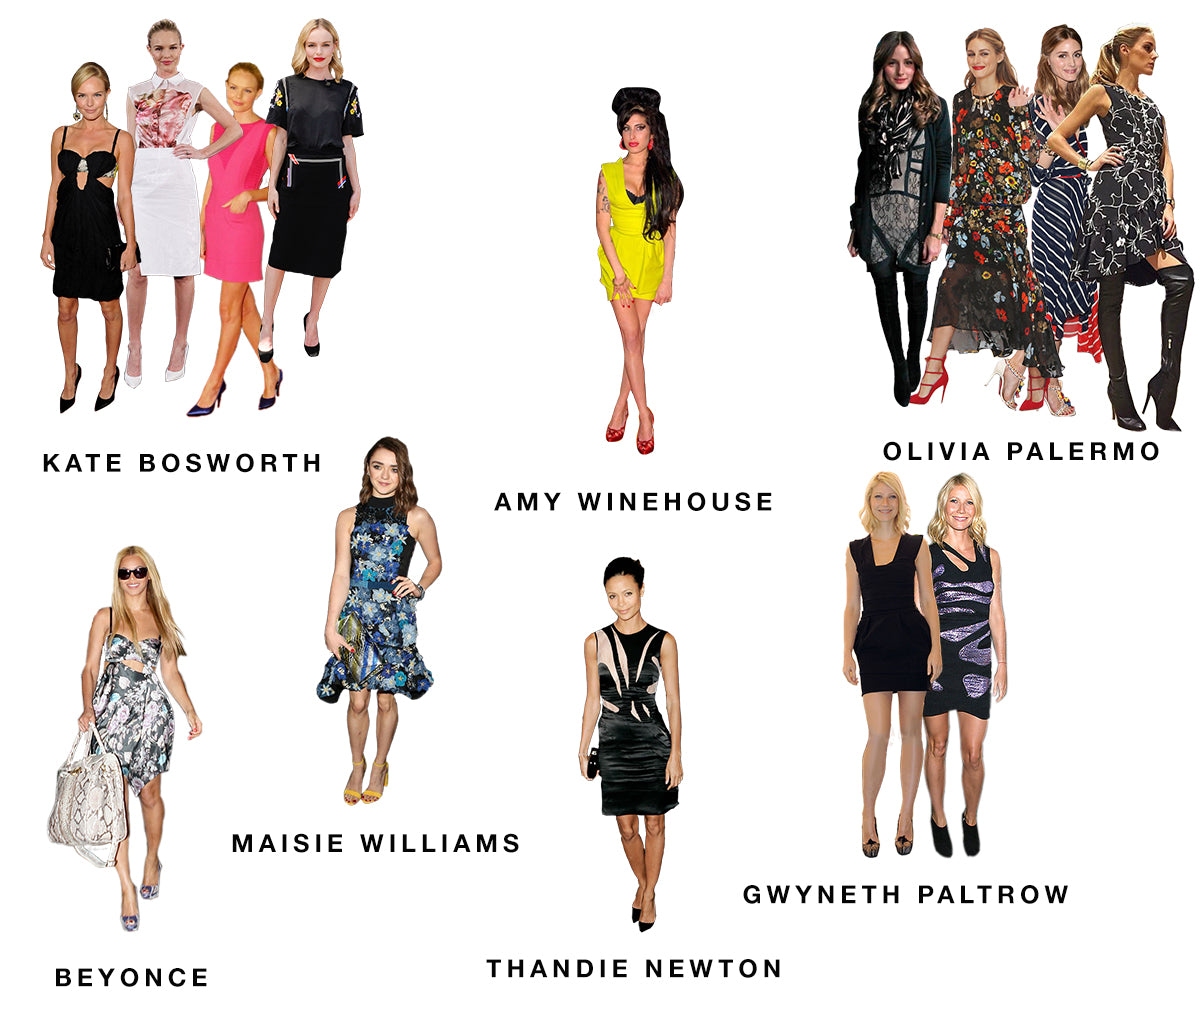 Kate Bosworth, Amy Winehouse, Olivia Palermo, Beyonce, Maisie Williams, Thandie Newton and Gwyneth Paltrow in Preen